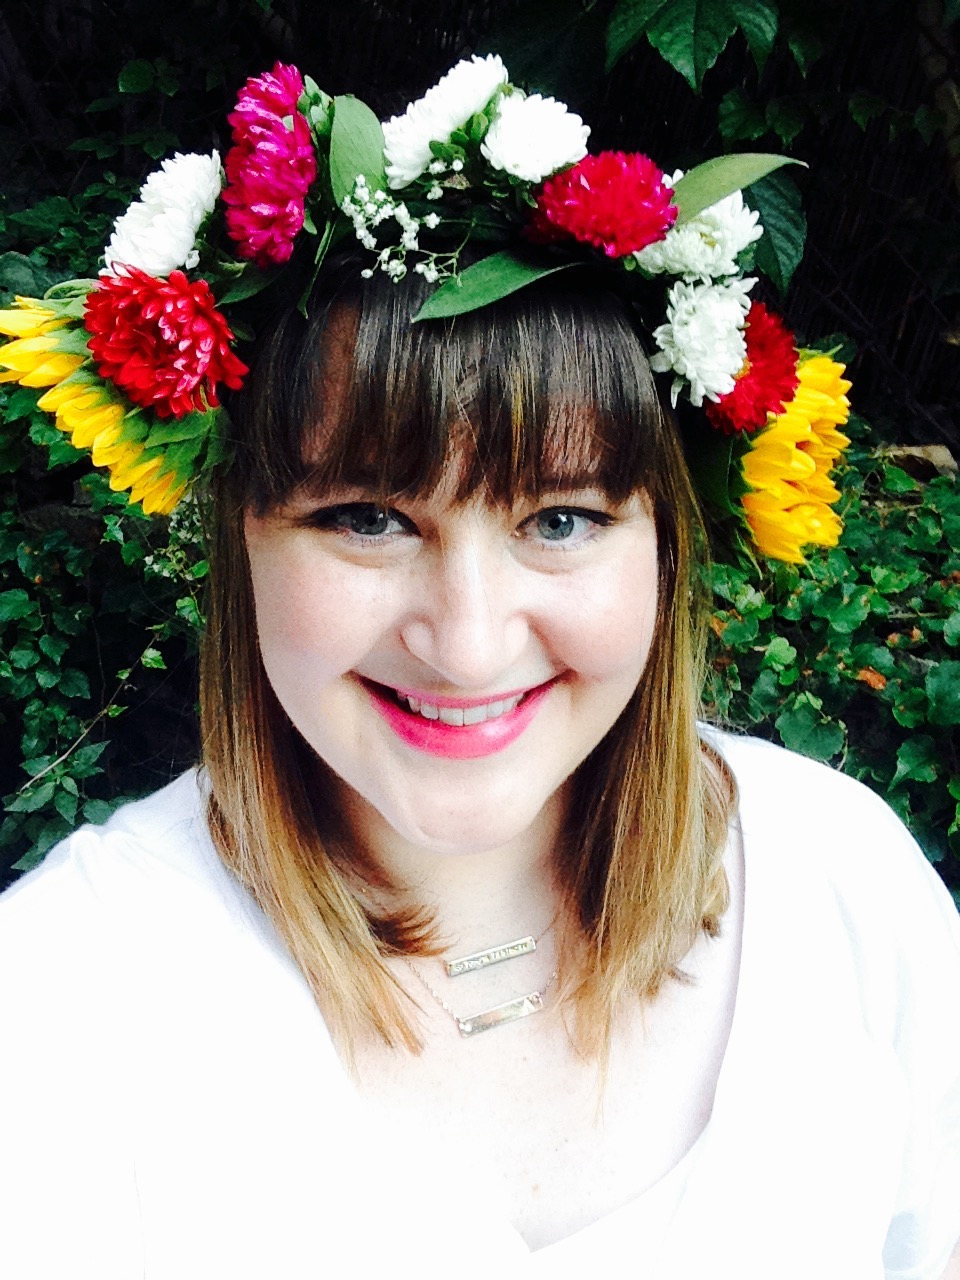 Diy flower crowns as told by ash and shelbs flower crowns izmirmasajfo Gallery